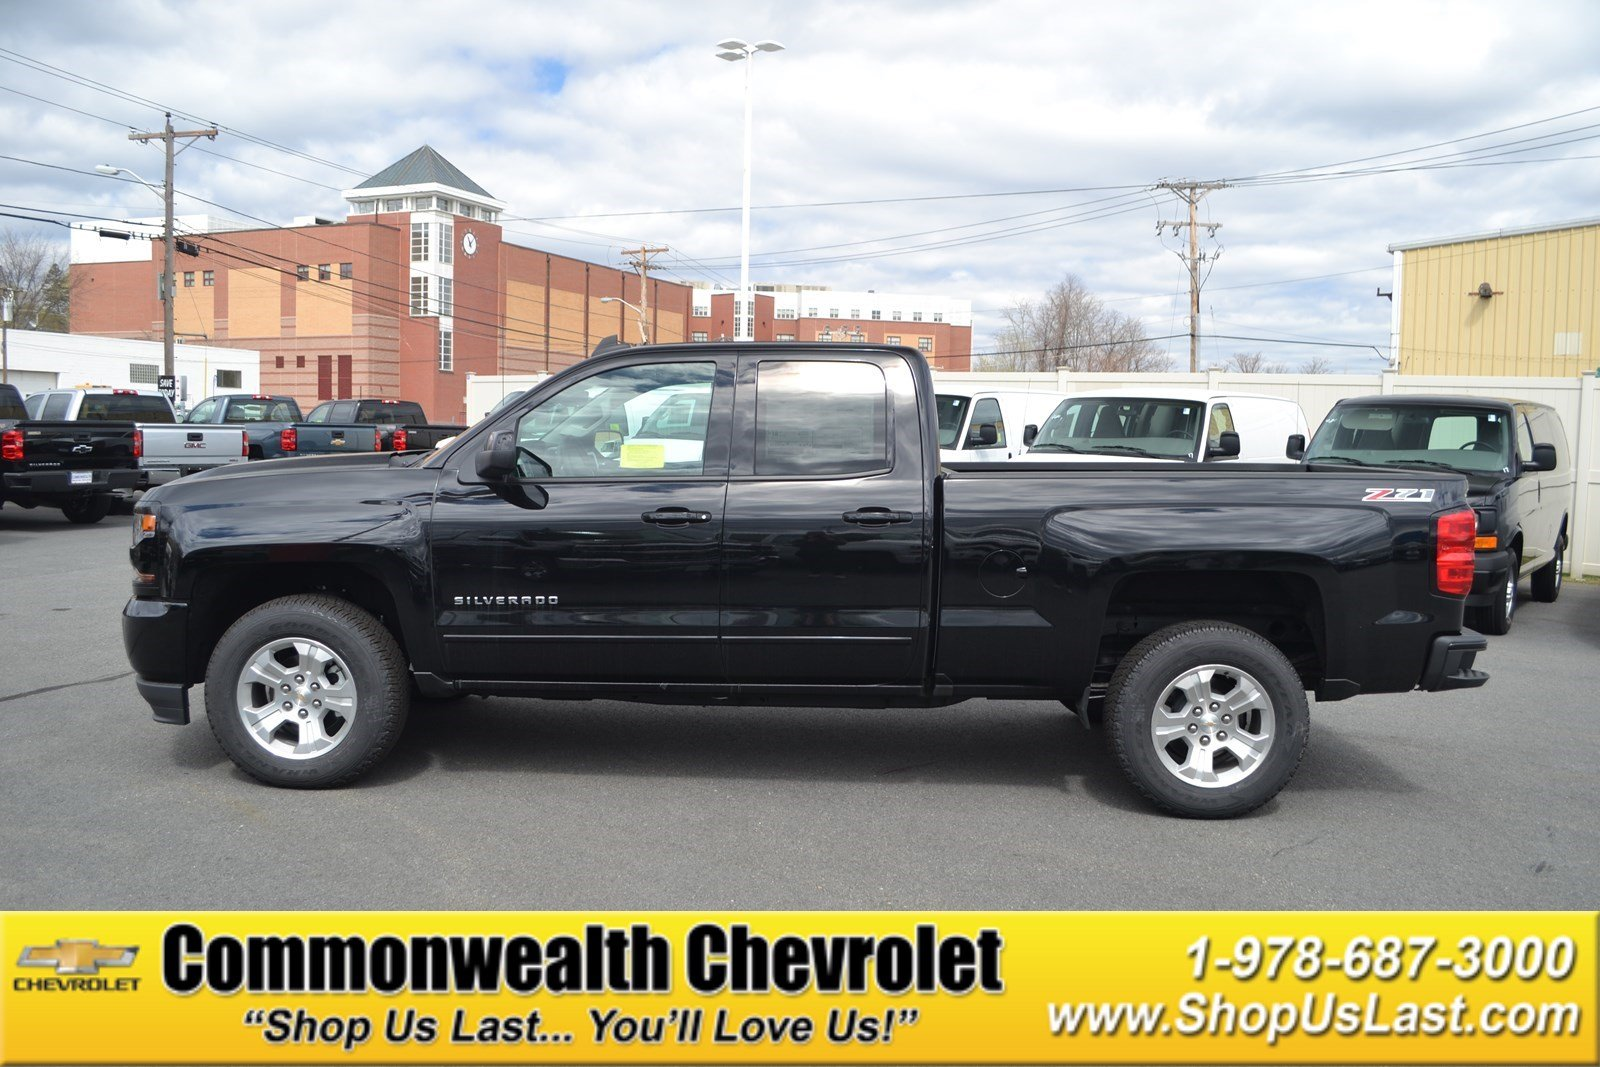 New 2017 Chevrolet Silverado 1500 Lt Extended Cab Pickup Extended Cab Pickup In Lawrence C5613